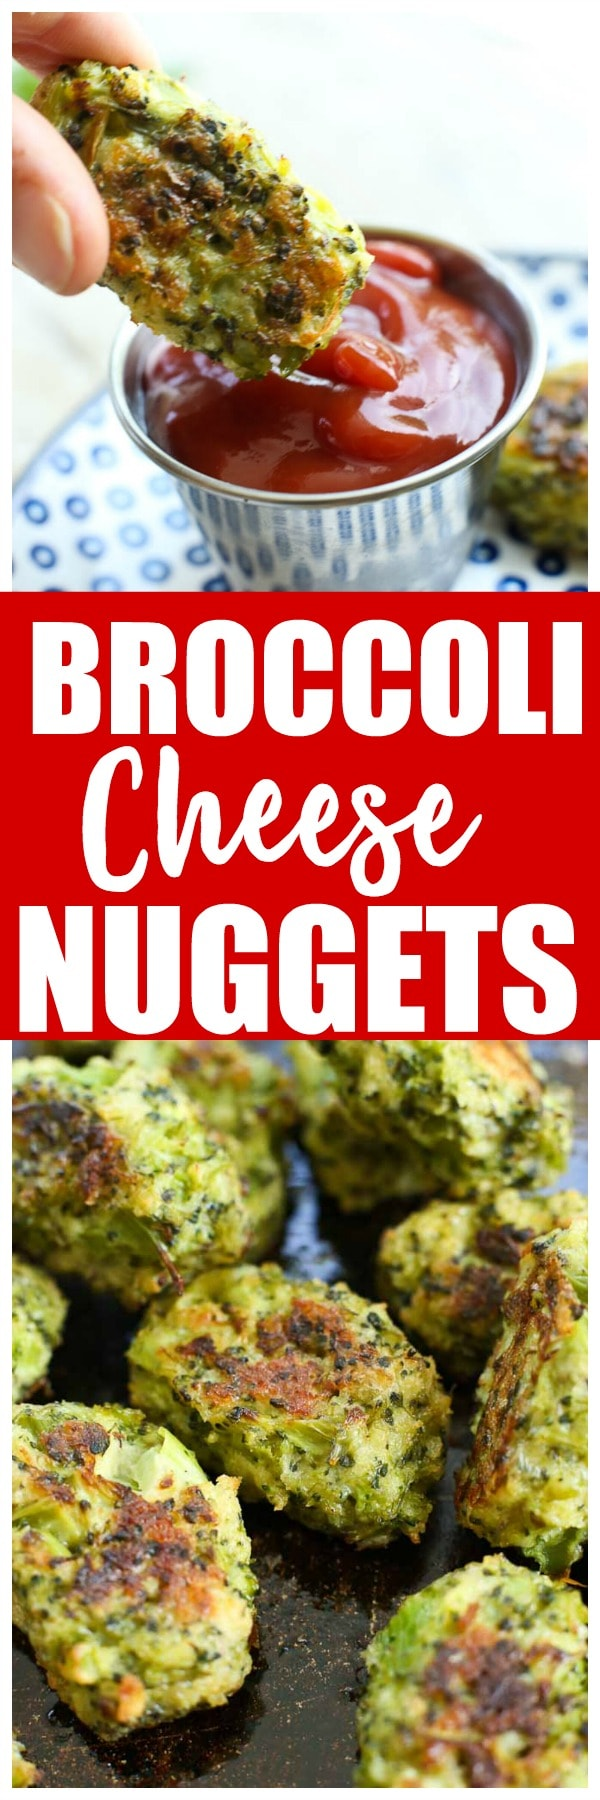 Broccoli bites recipe happy healthy mama broccoli cheese bites nuggets recipe toddler vegetable side dish healthy forumfinder Images